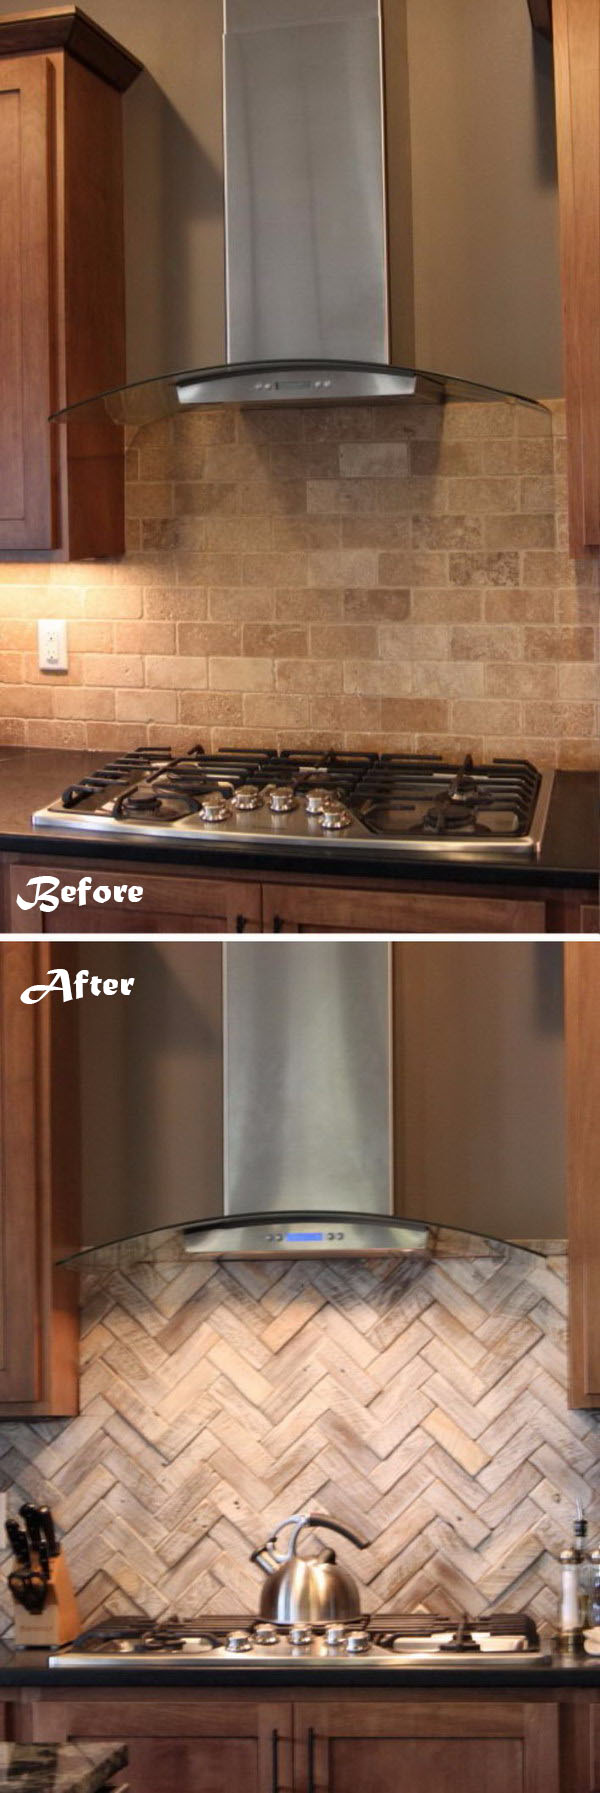 Change the Look and Feel of Your Kitchen by Changing the Backsplash.